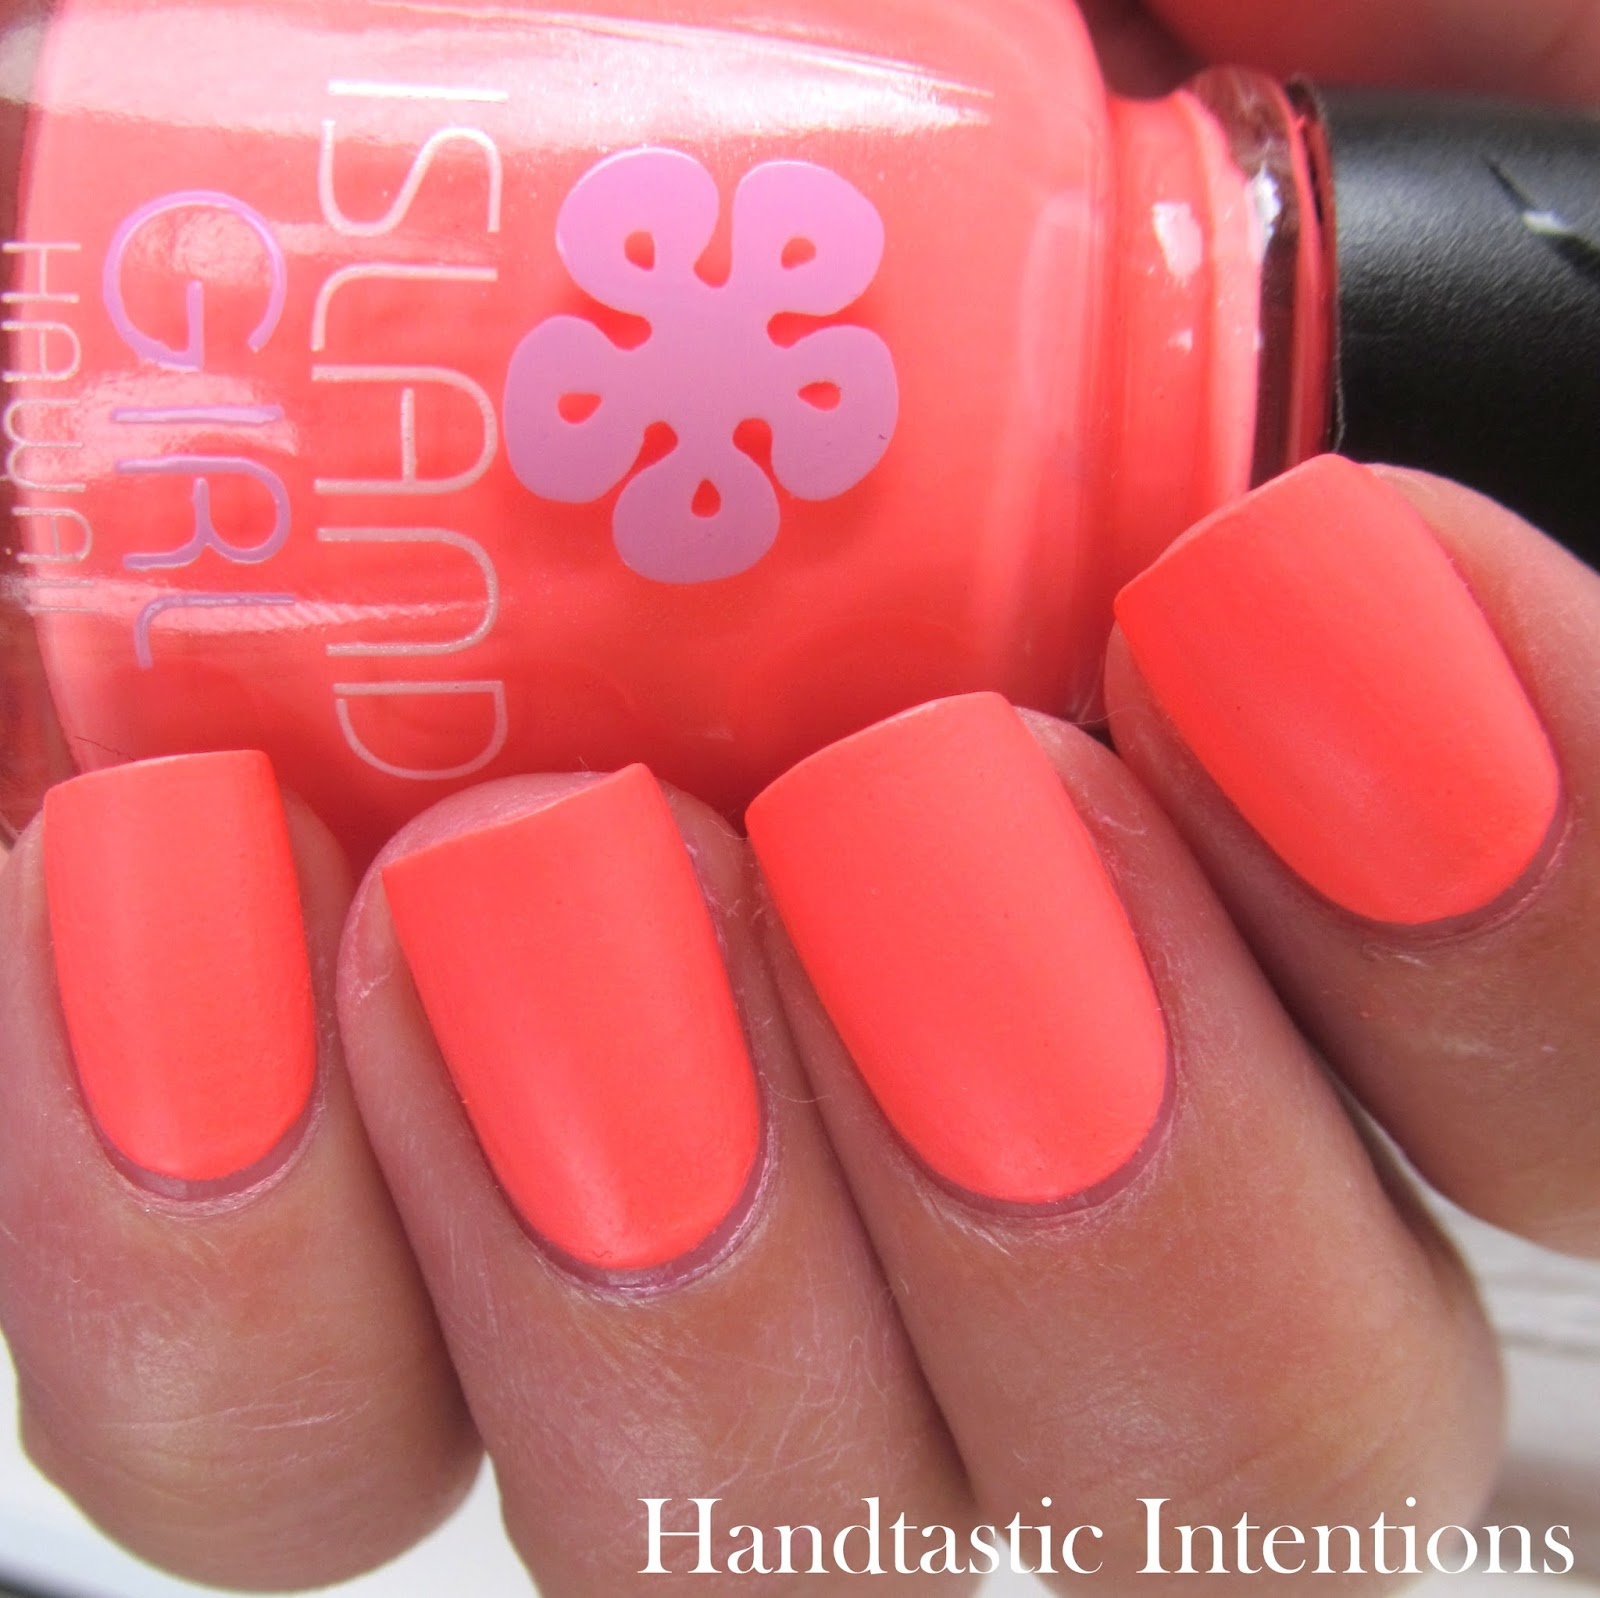 Handtastic Intentions: Swatch and Review of Island Girl Trio